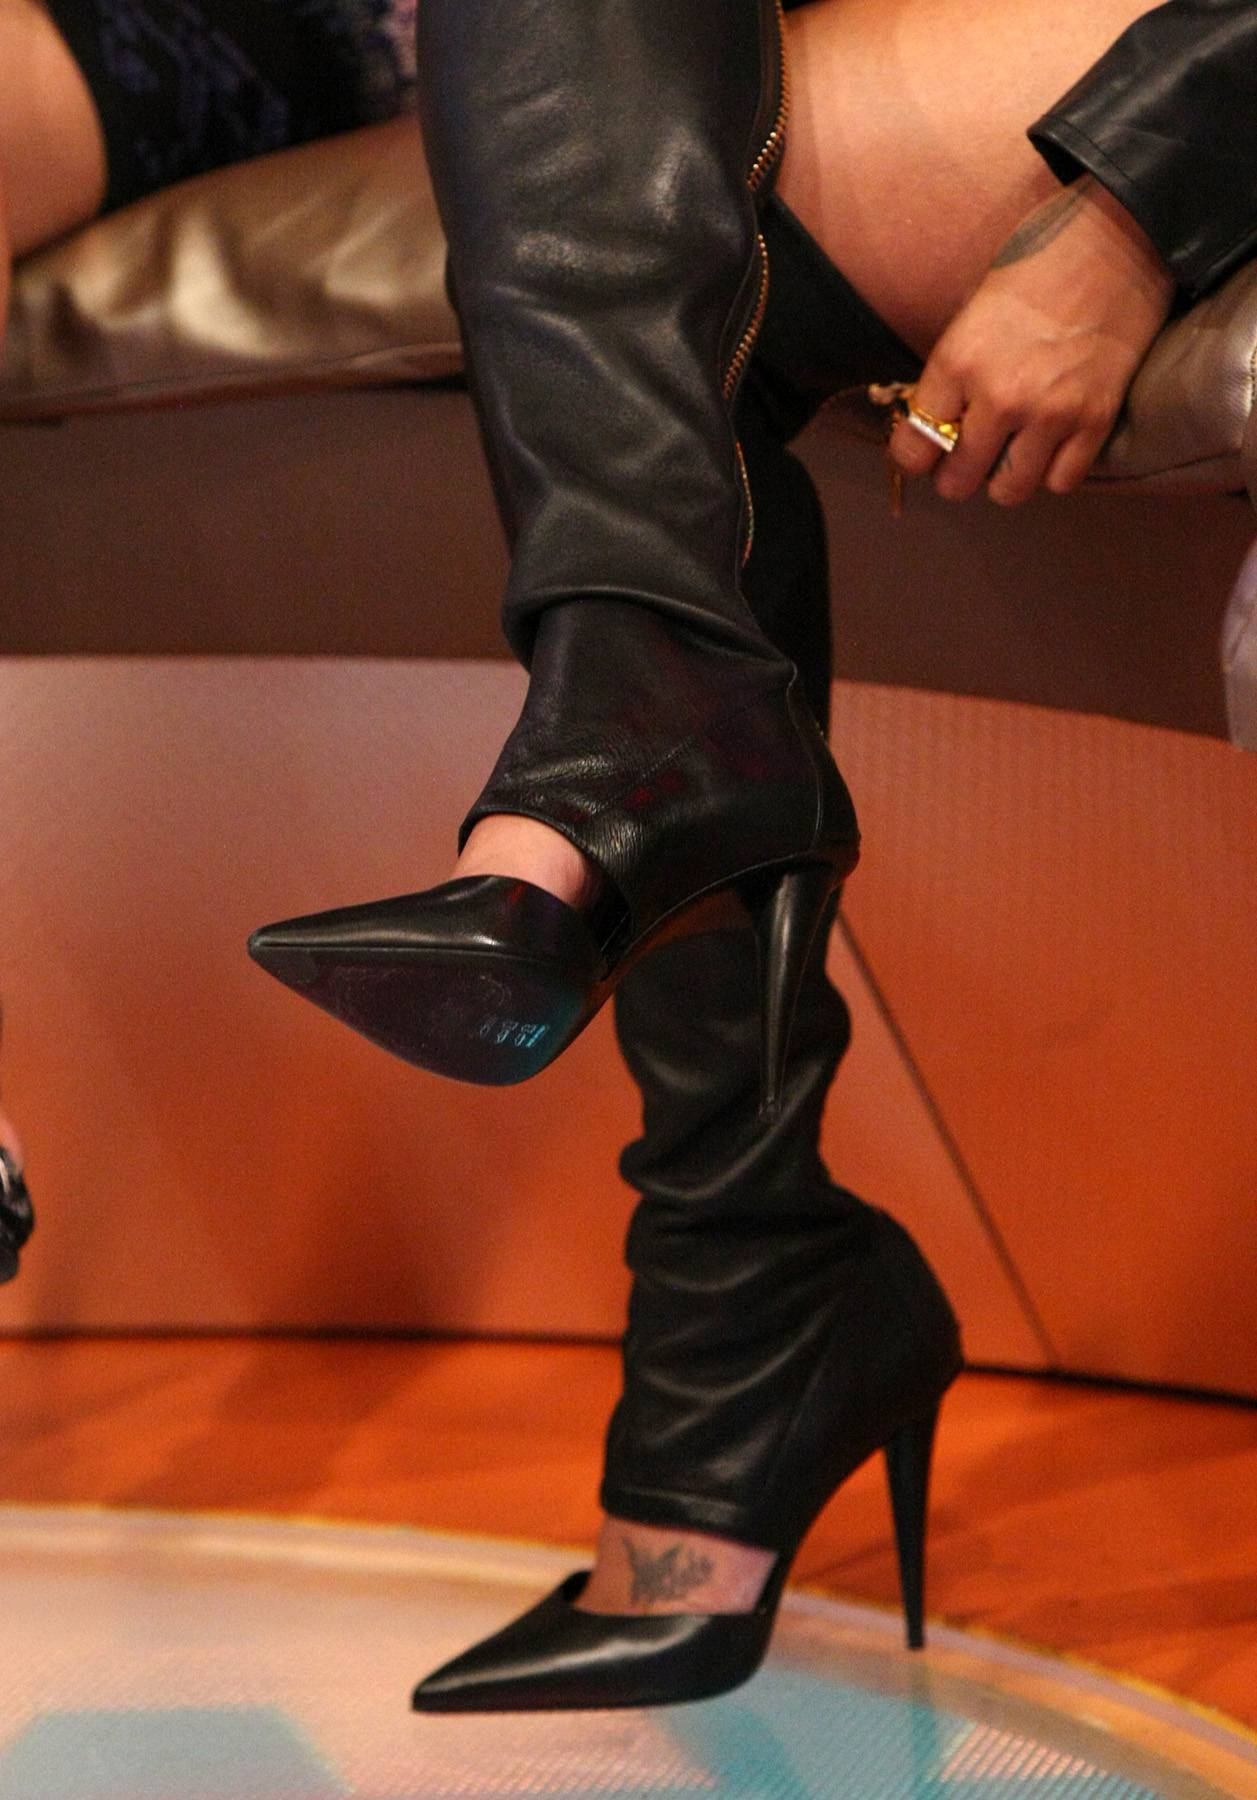 Knee High - LaLa Anthony rocks some knee high boots while on 106. (Photo: Bennett Raglin/BET/Getty Images for BET)